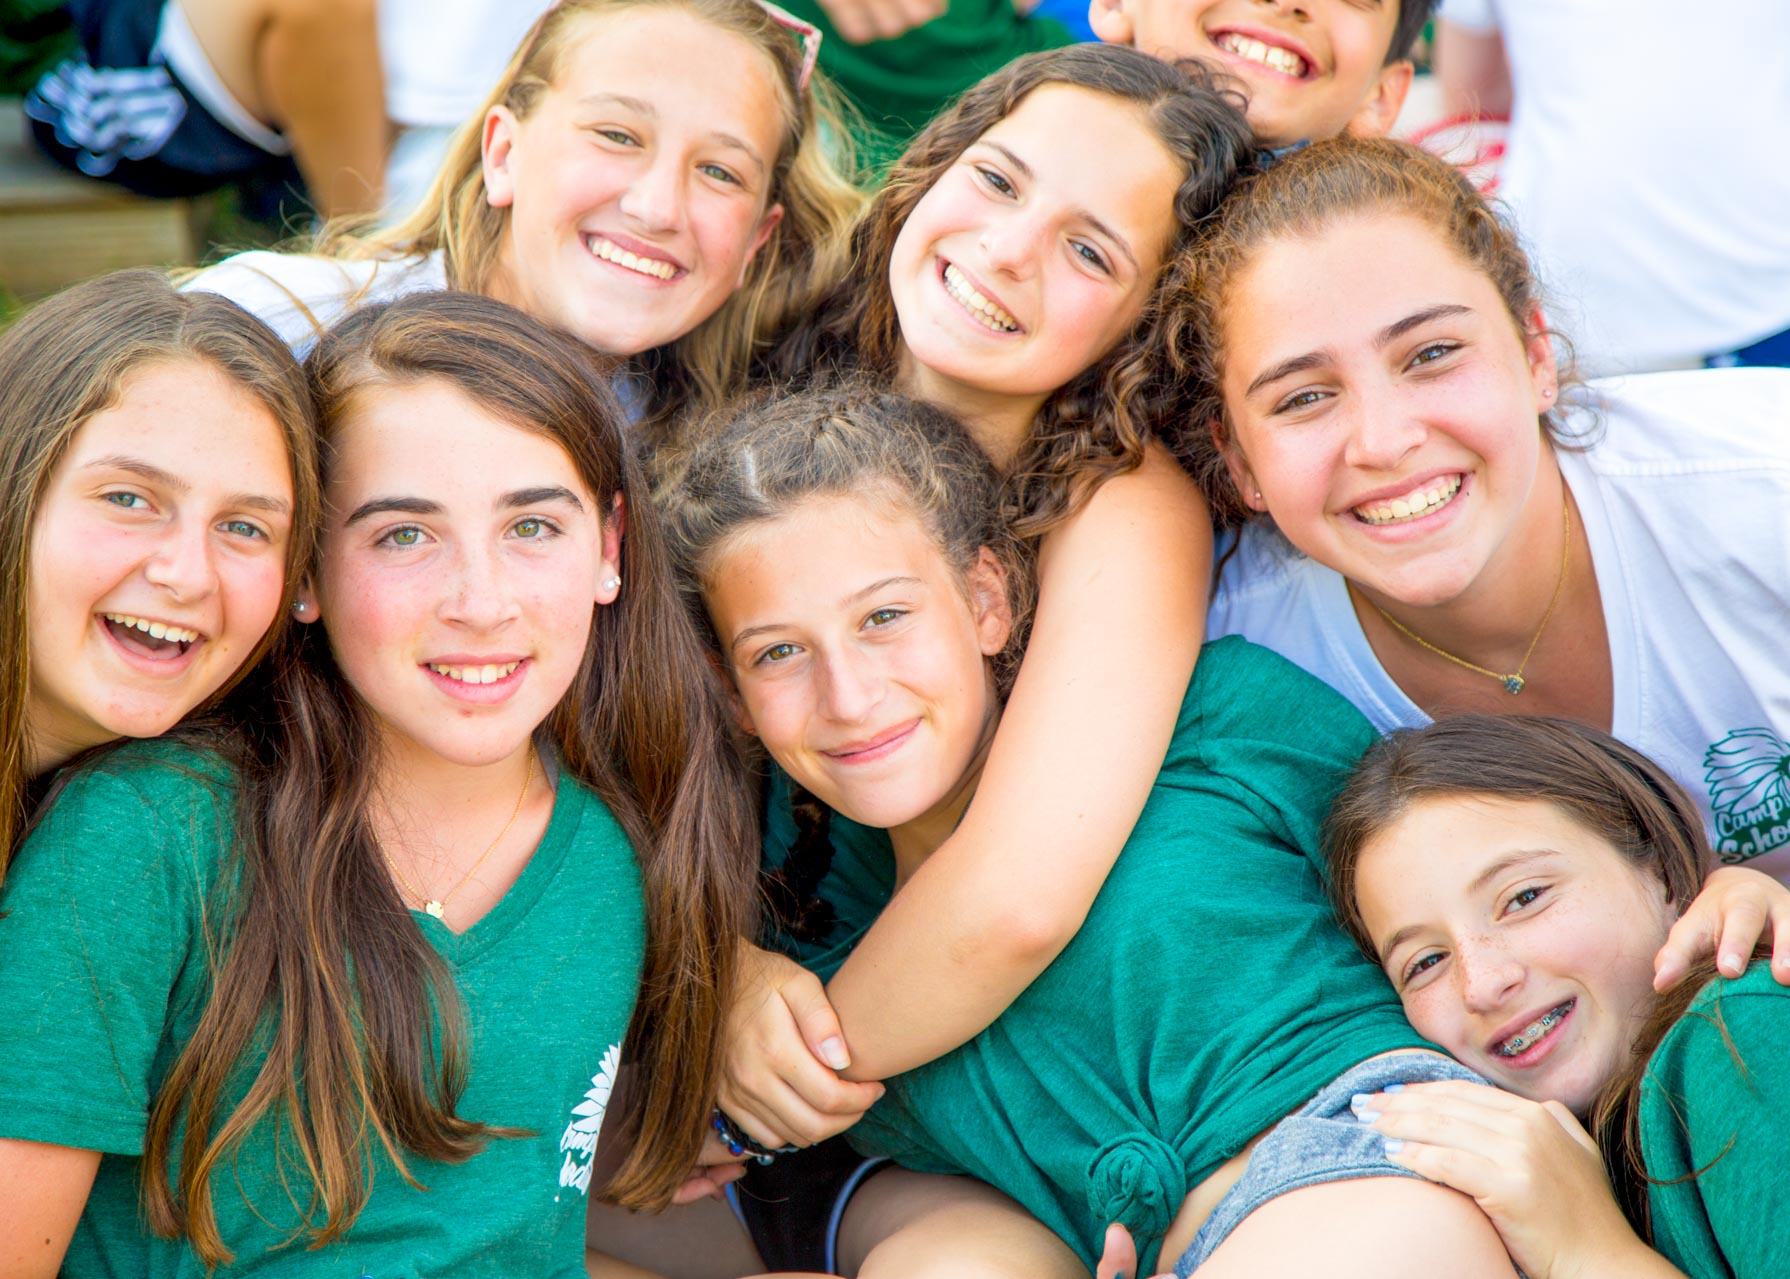 A group of smiling girls hug each other at summer camp